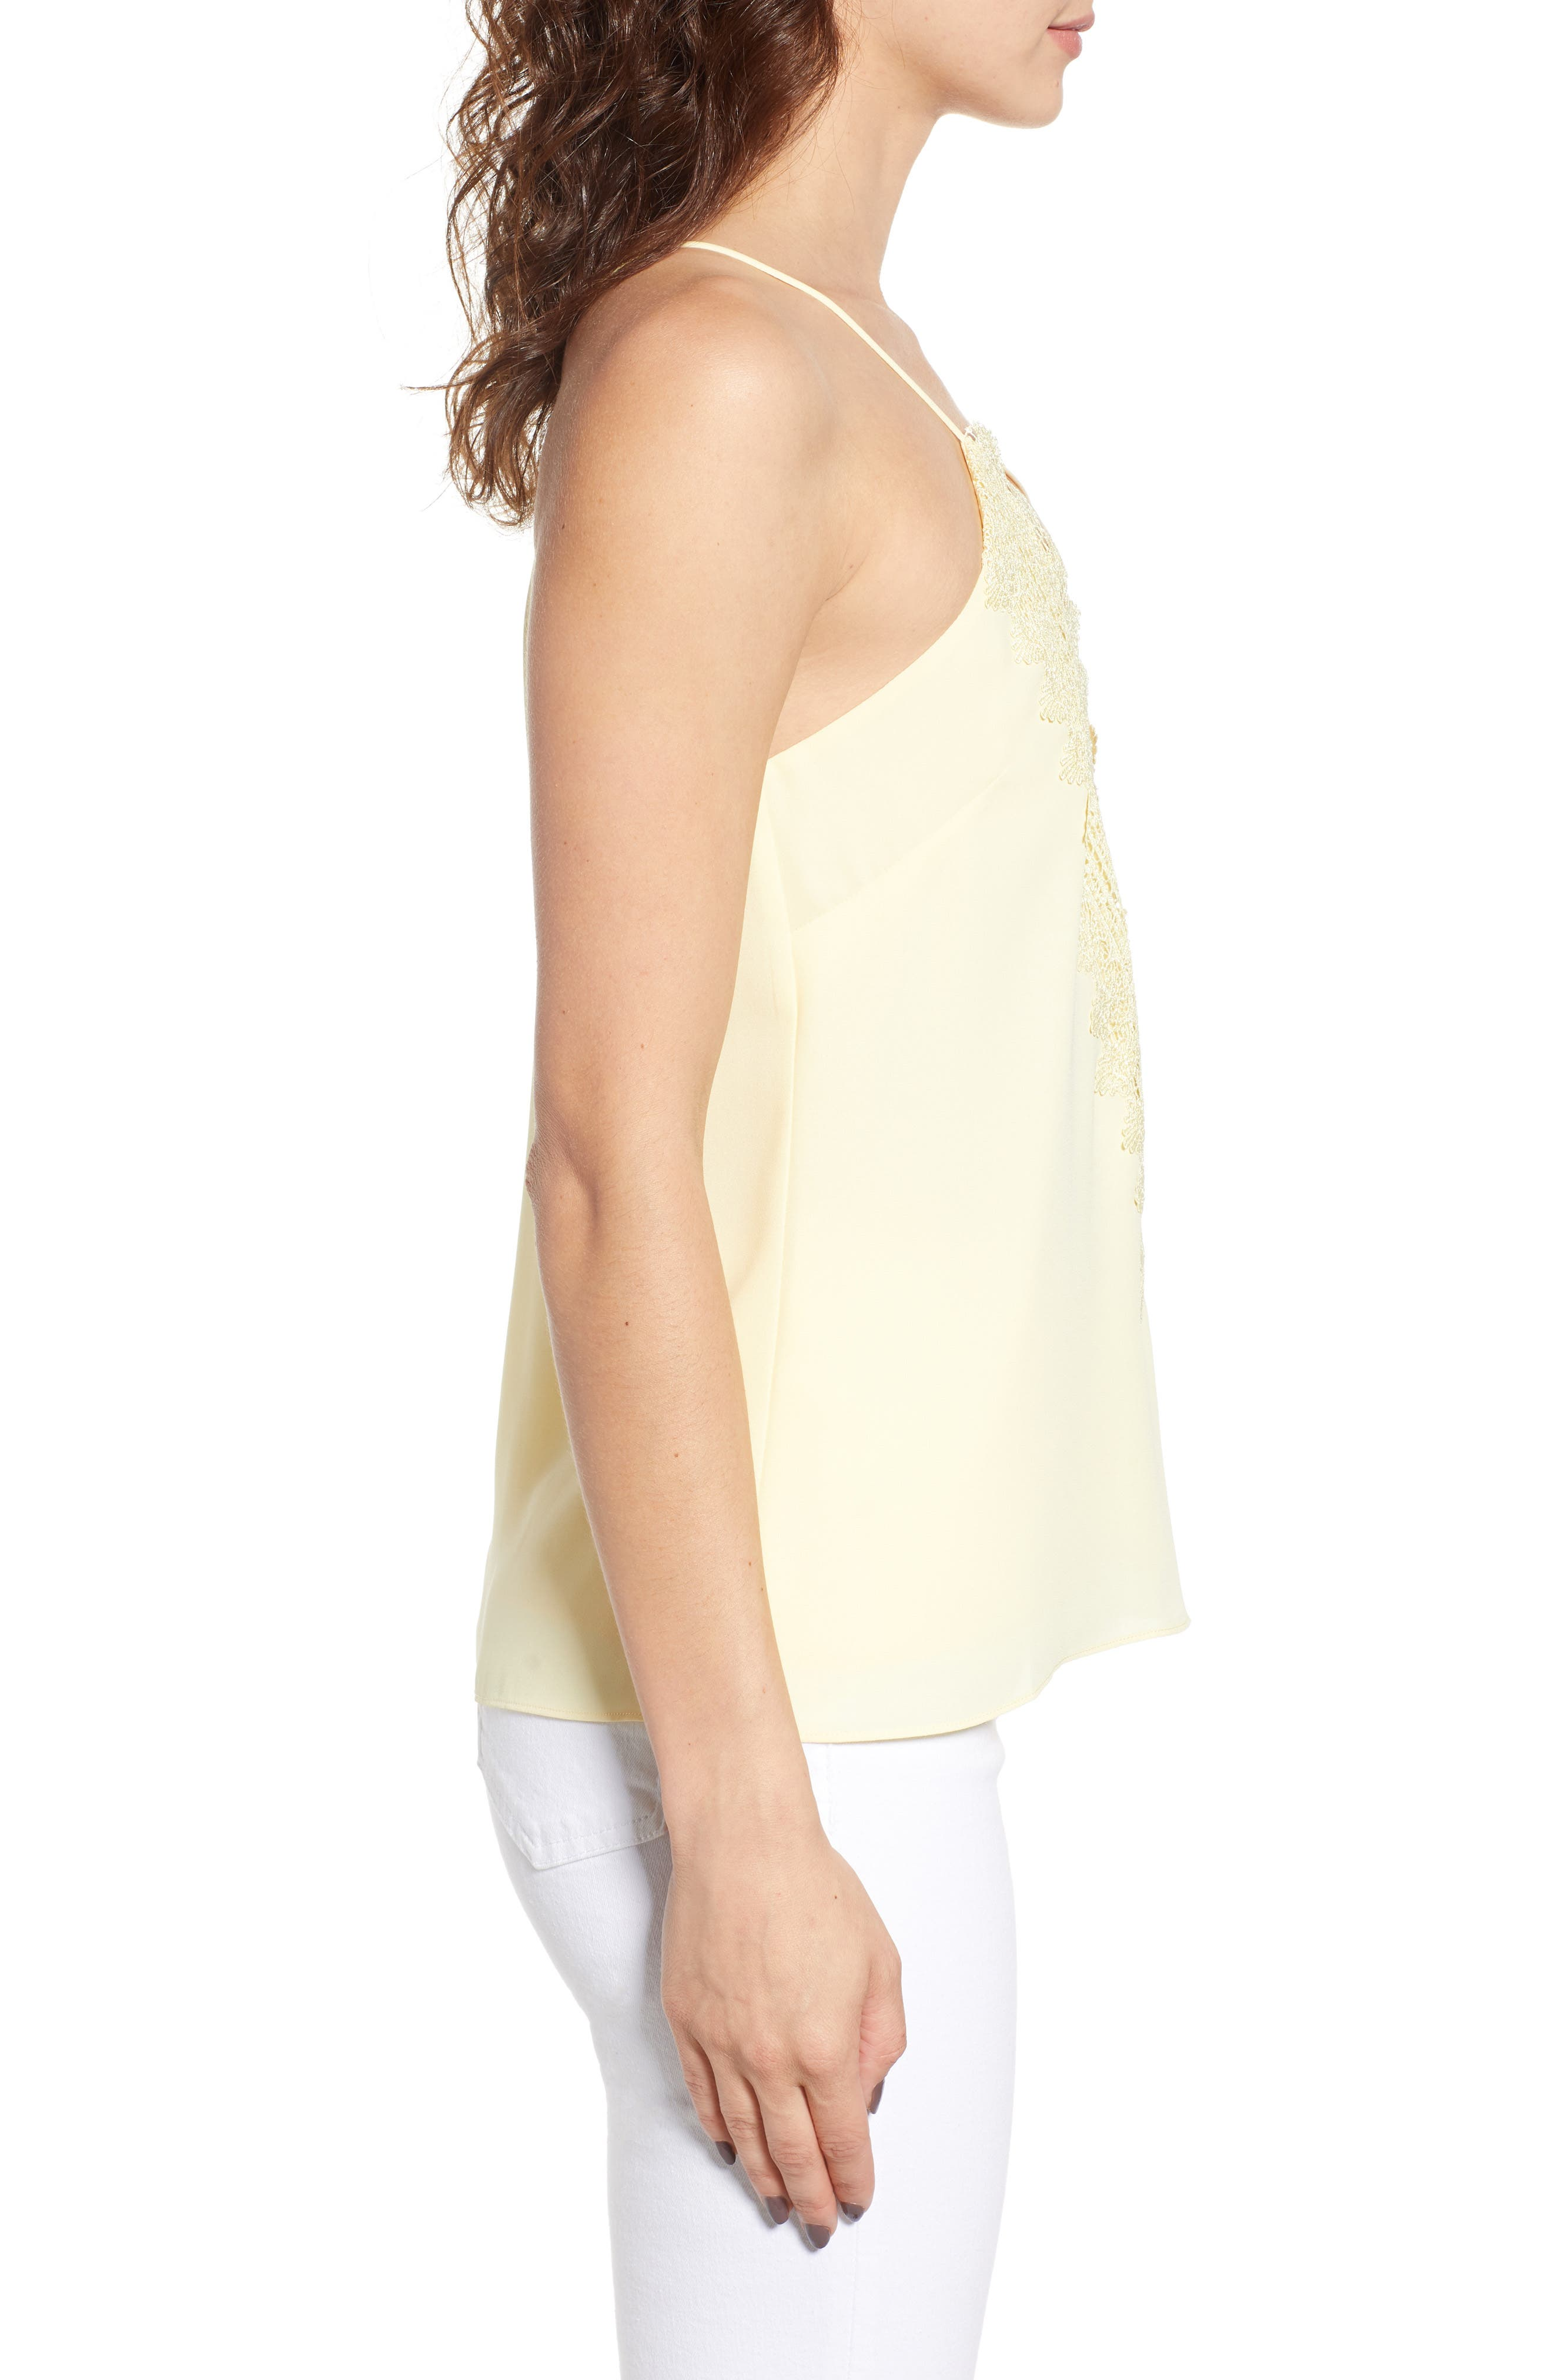 Posie Strappy Camisole,                             Alternate thumbnail 4, color,                             Yellow Pastel